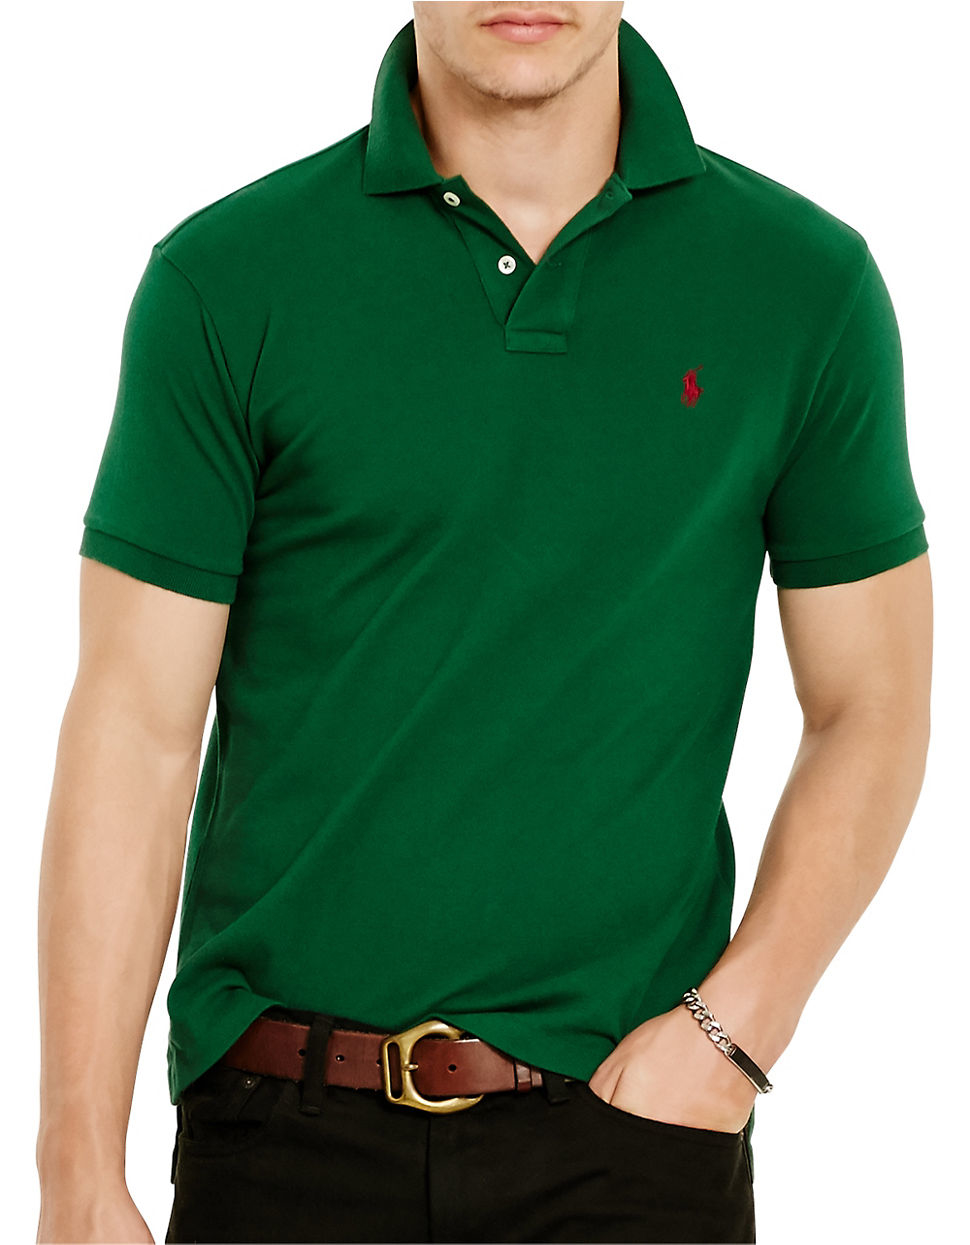 Polo ralph lauren men 39 s classic fit mesh polo shirt in for Forest green polo shirts